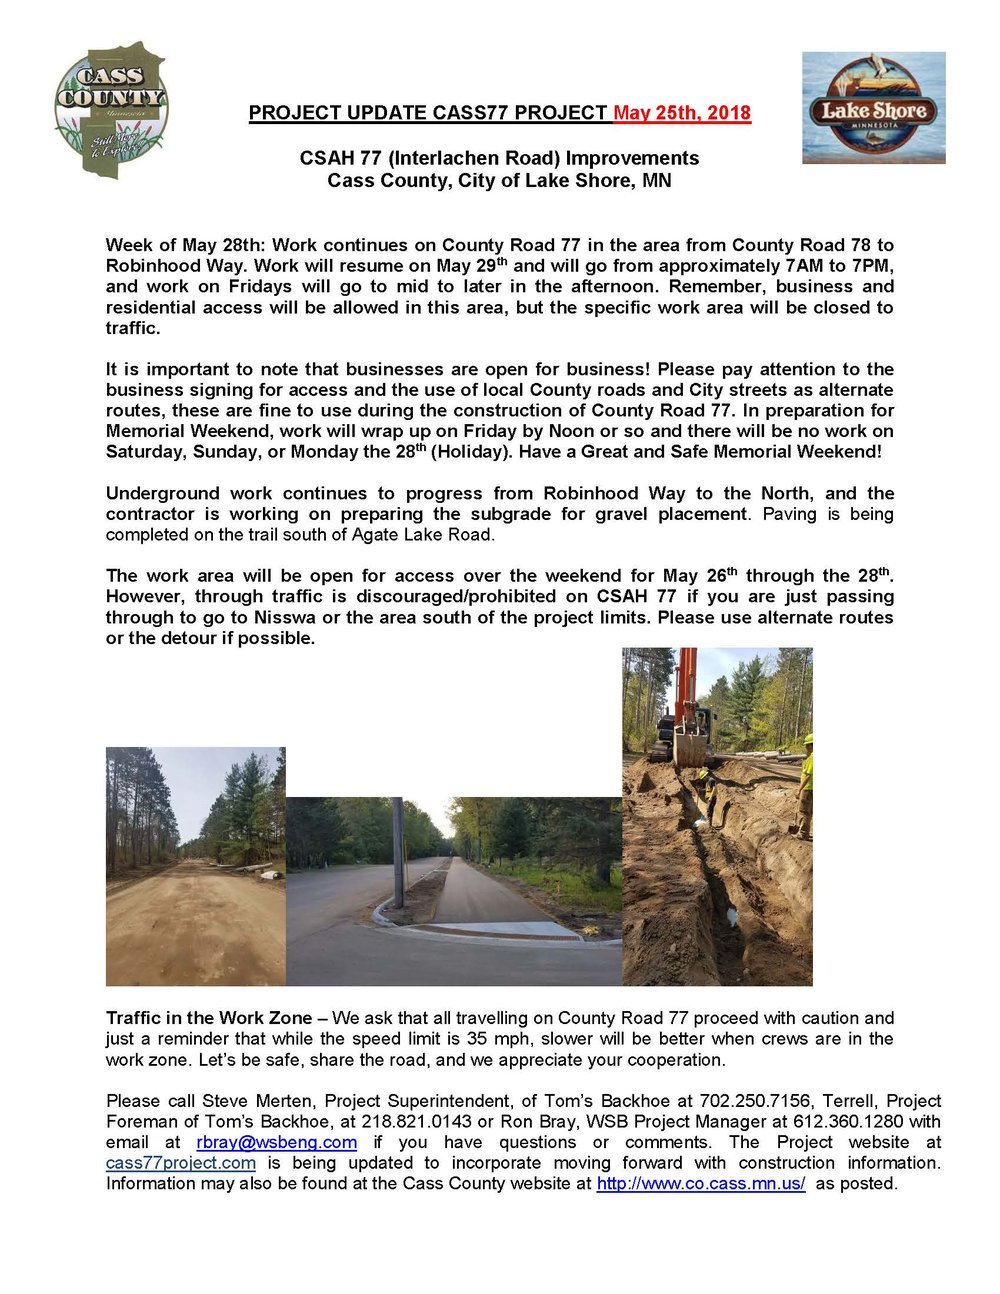 Cass County CSAH 77 Project update May 25th 2018.jpg